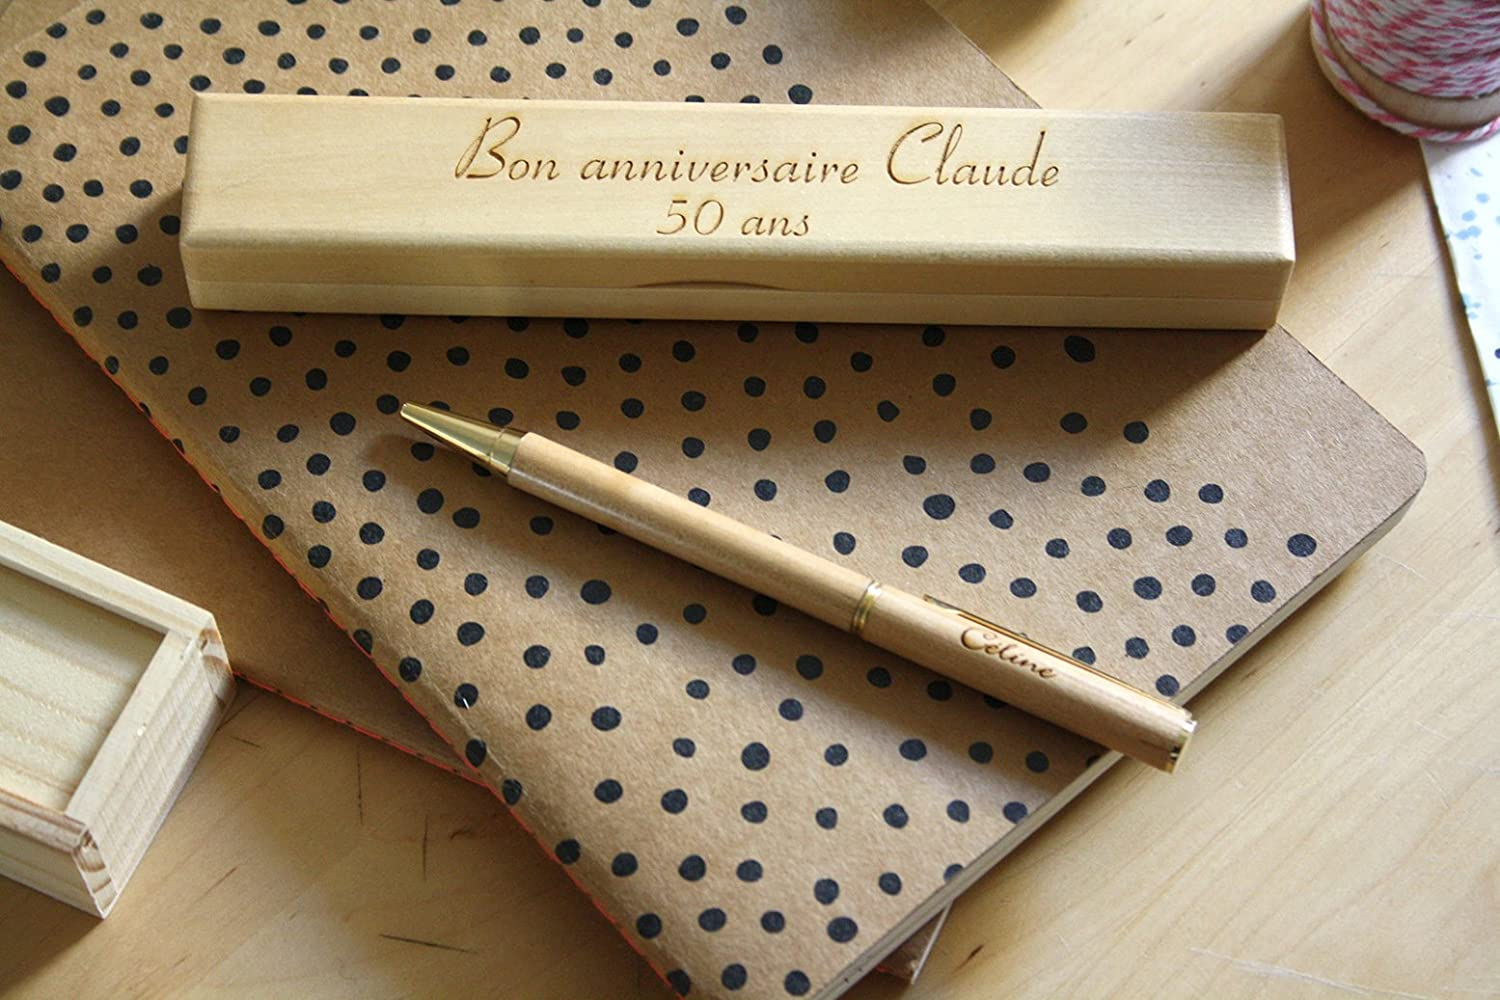 Custom pen with wooden box, text, name engraved, personalized gift, Wedding, birthday retirement unique gift